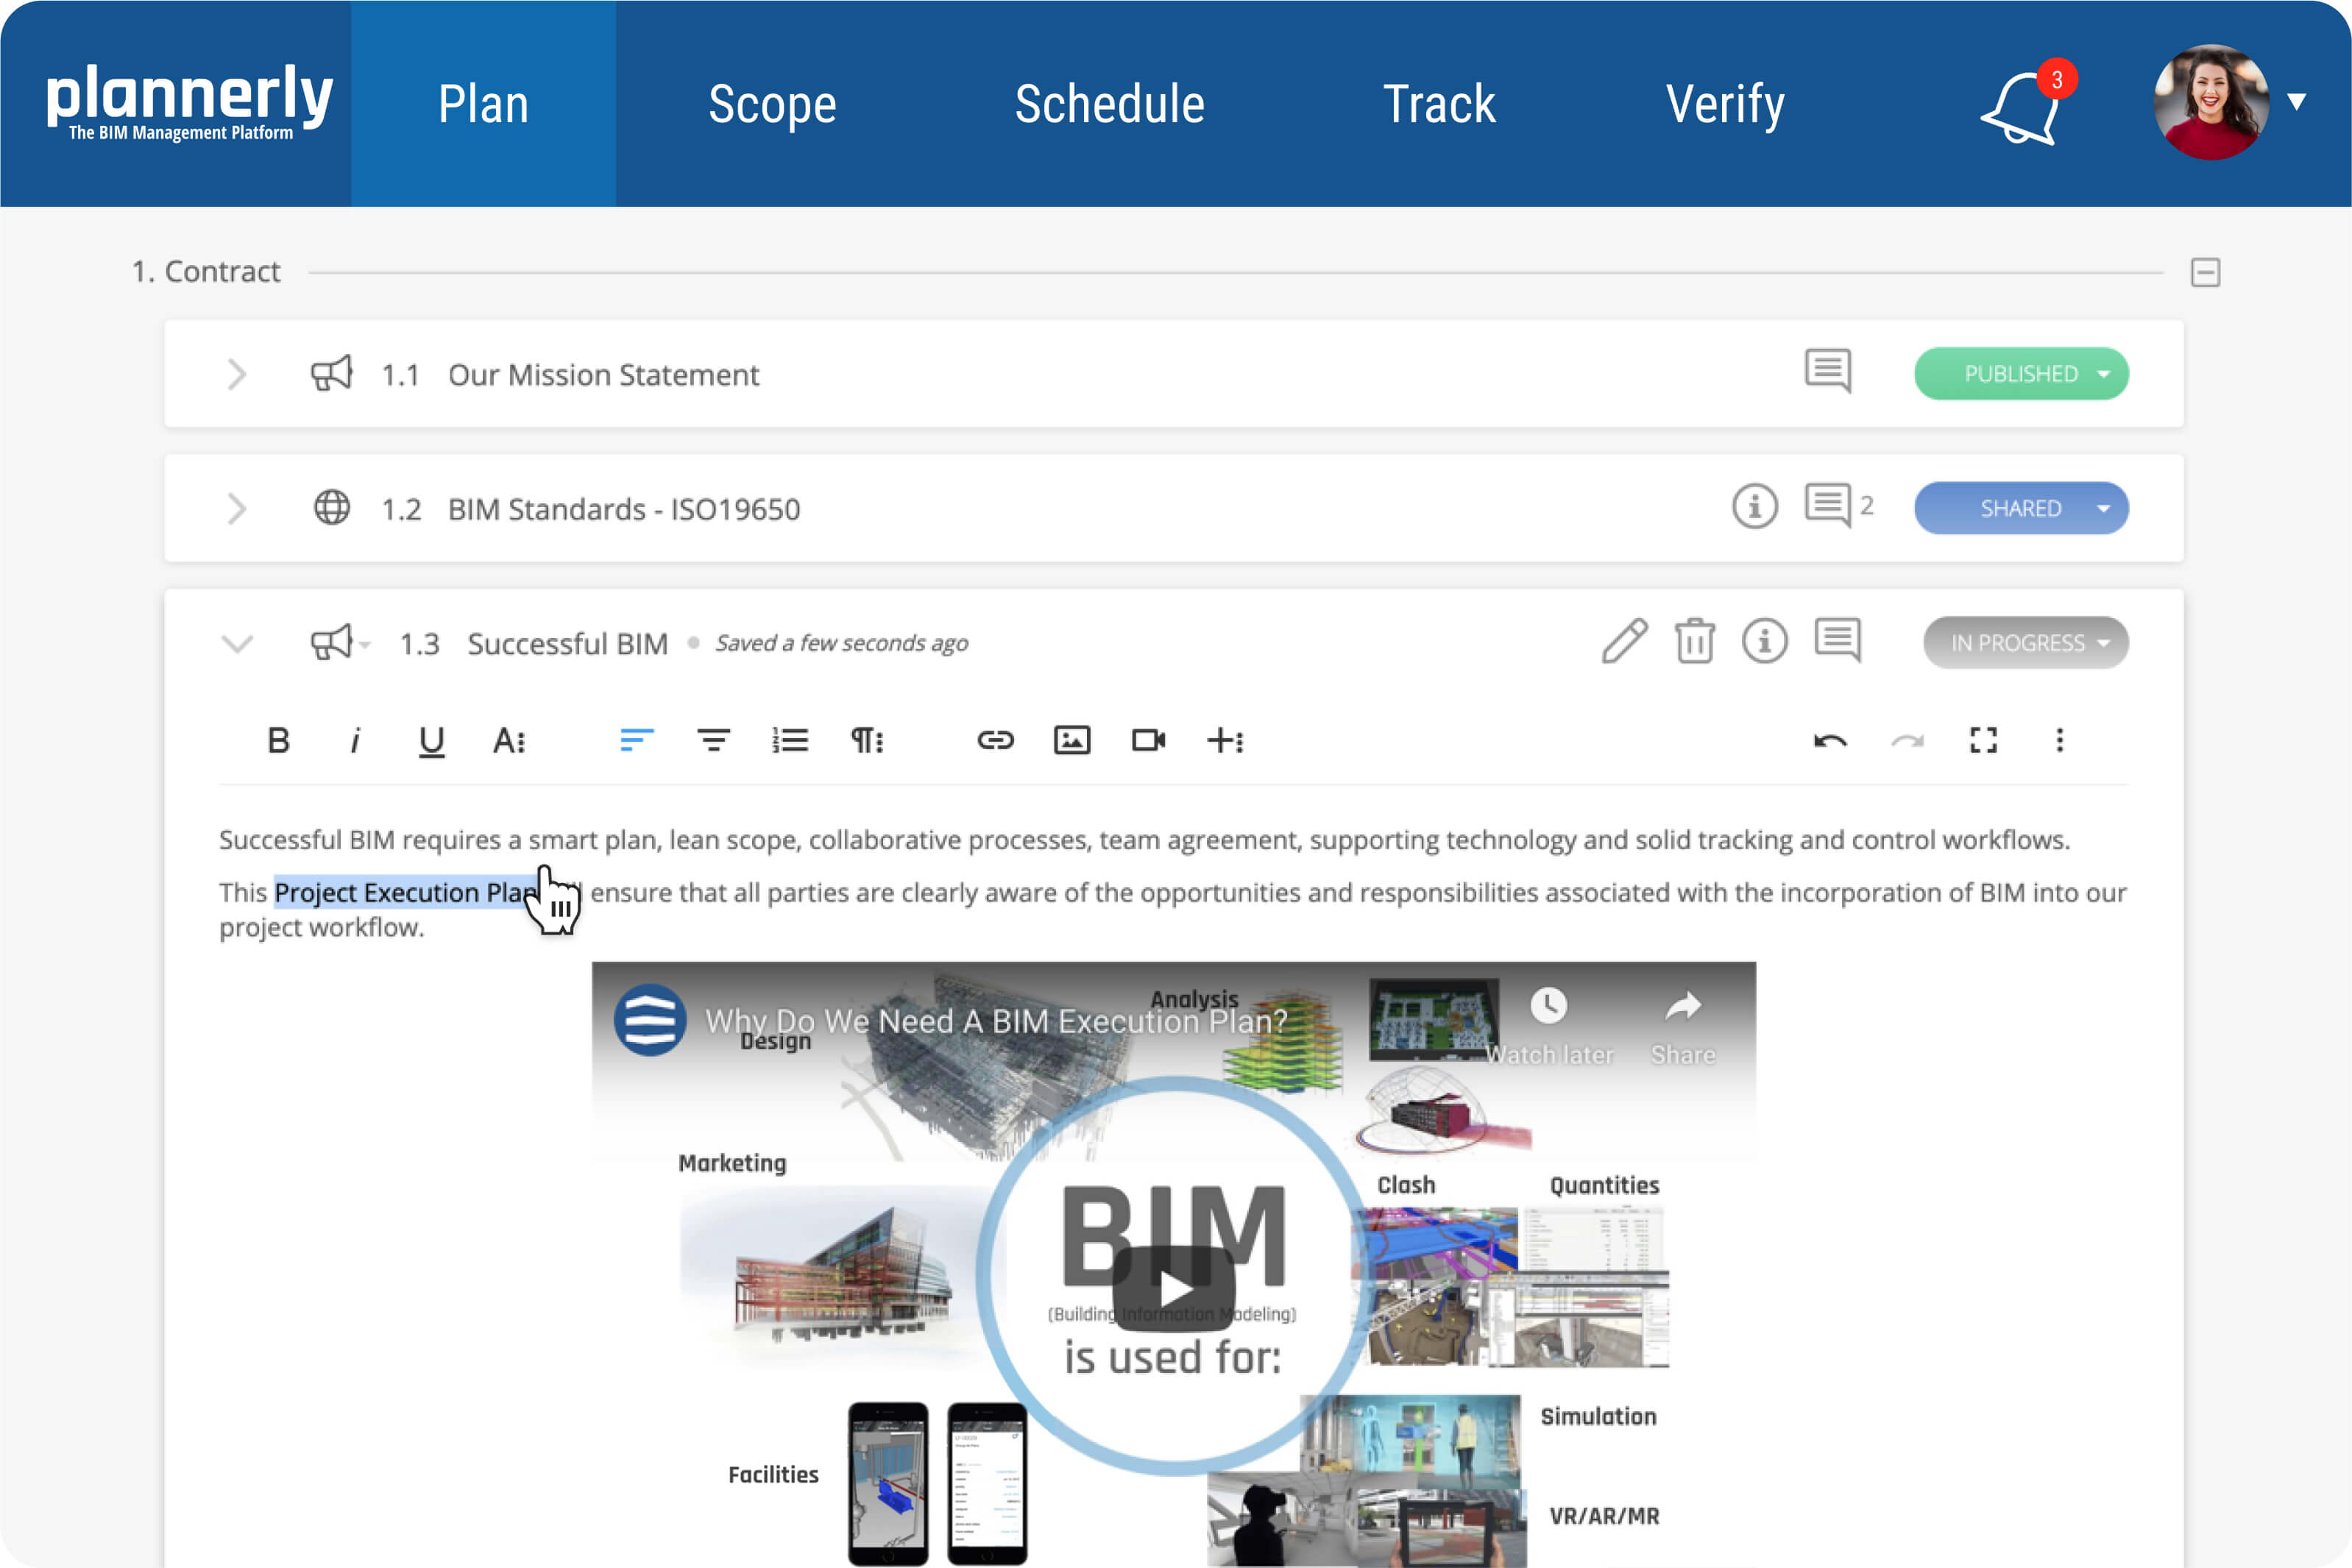 Plannerly - Plan Module - for BIM Execution Planning